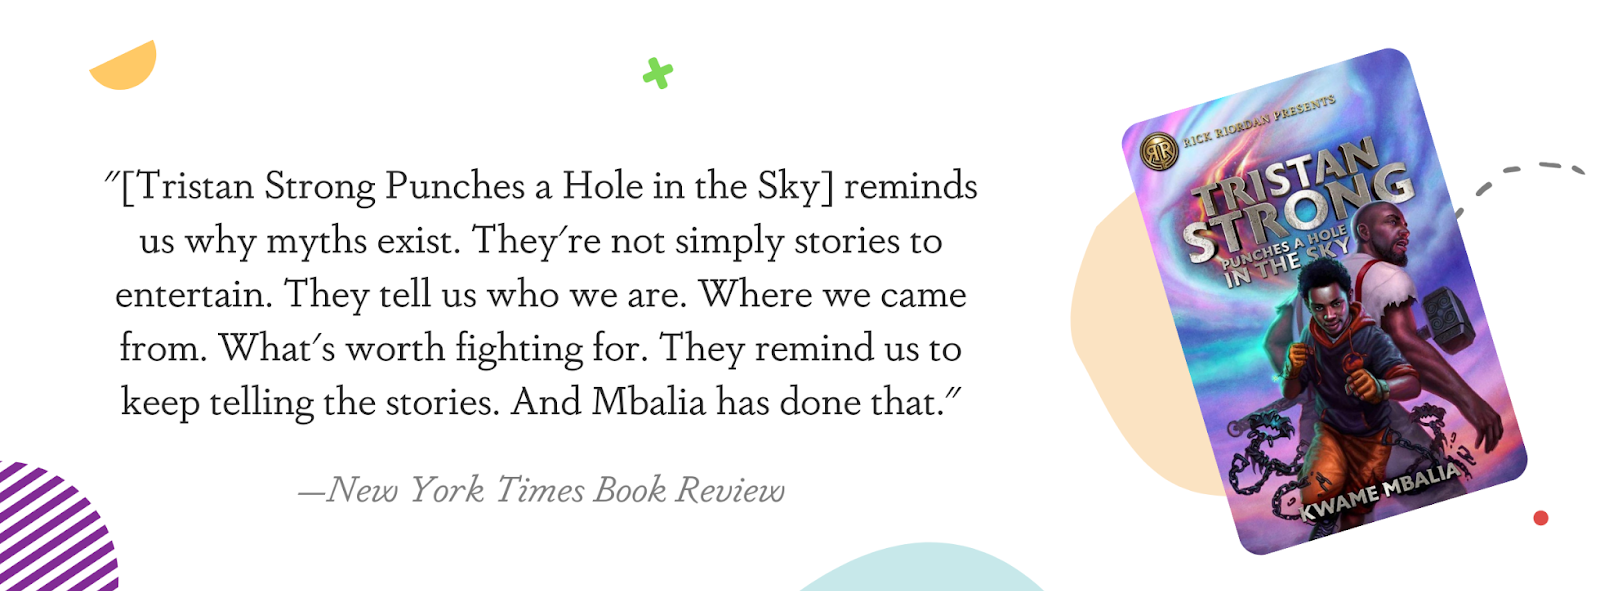 """Image displaying a New York Times Book Review quote: """"[Tristan Strong Punches a Hole in the Sky] reminds us why myths exist. They're not simply stories to entertain. They tell us who we are. Where we came from. What's worth fighting for. They remind us to keep telling the stories. And Mbalia has done that."""""""